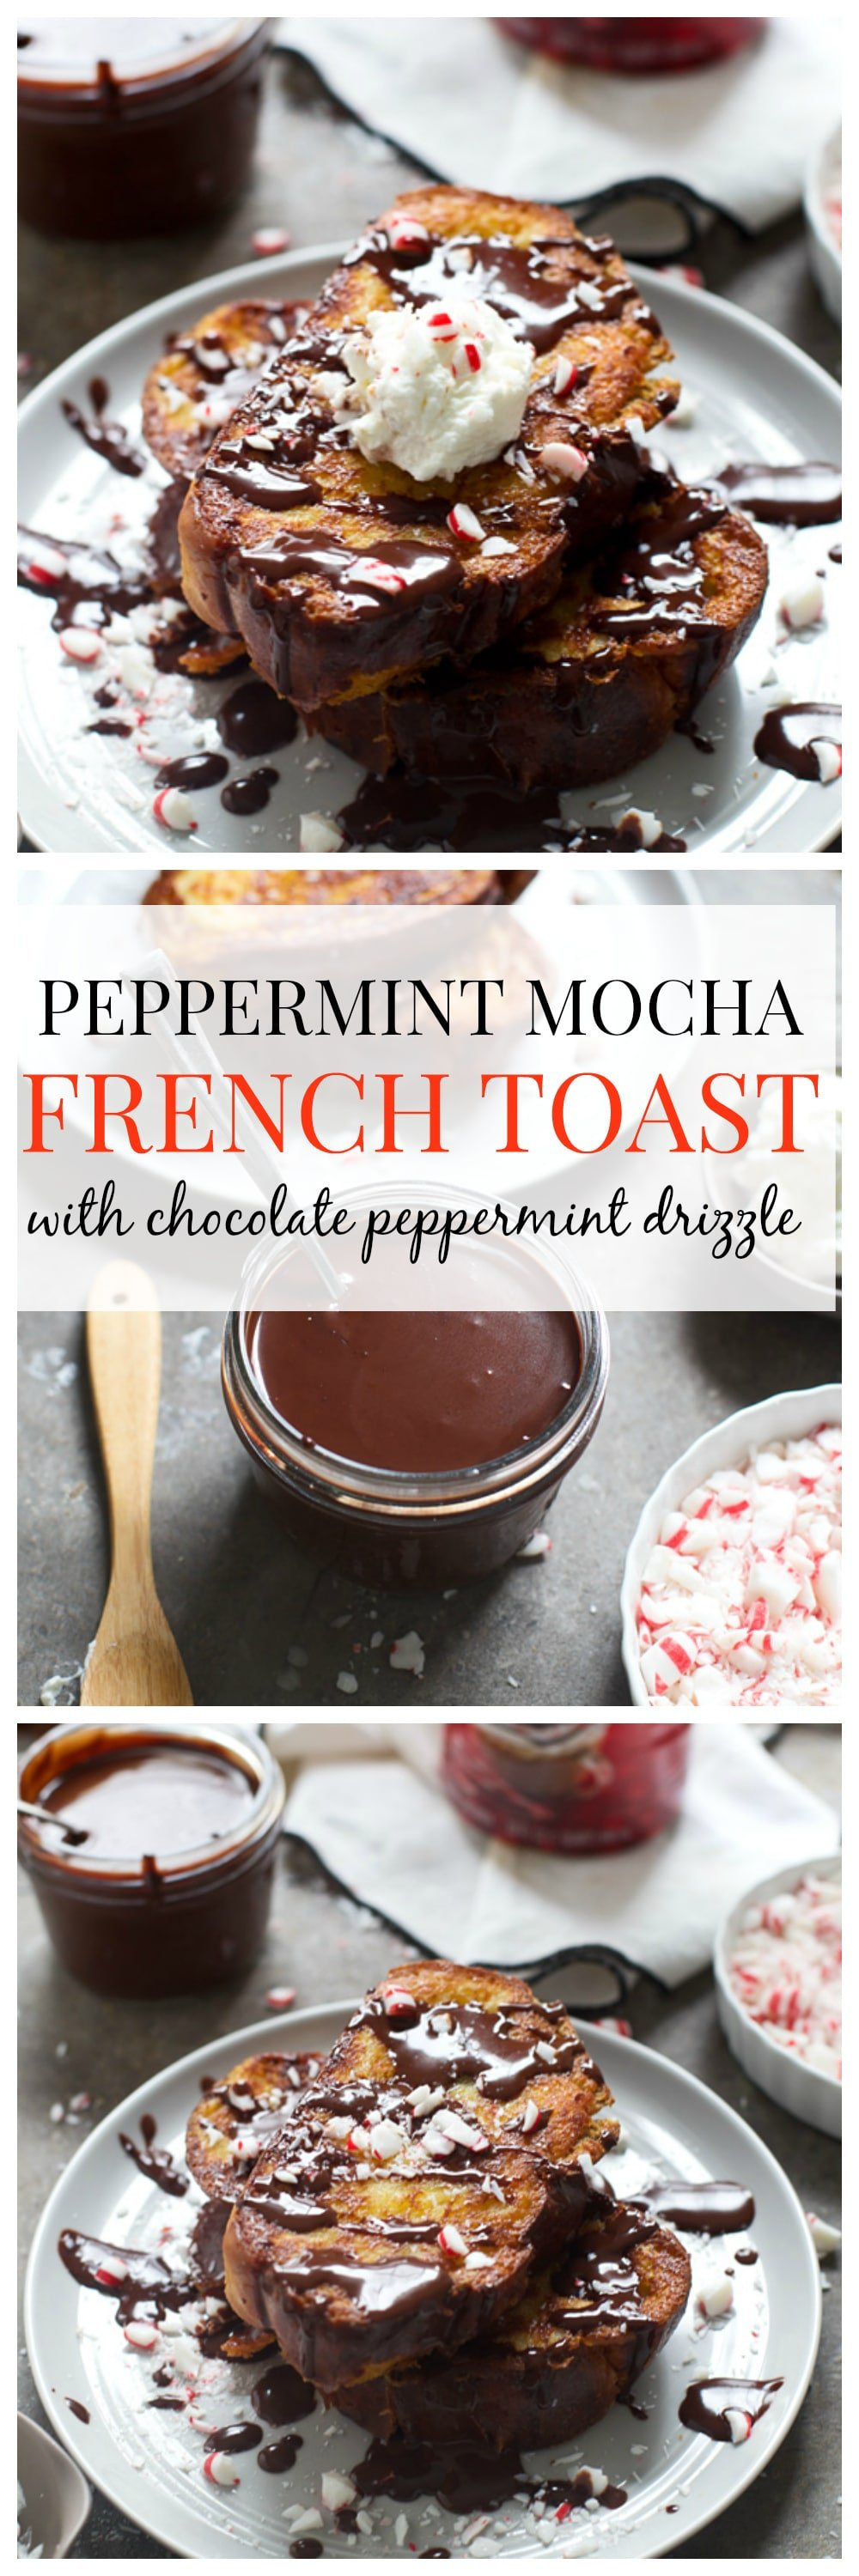 Peppermint Mocha French Toast